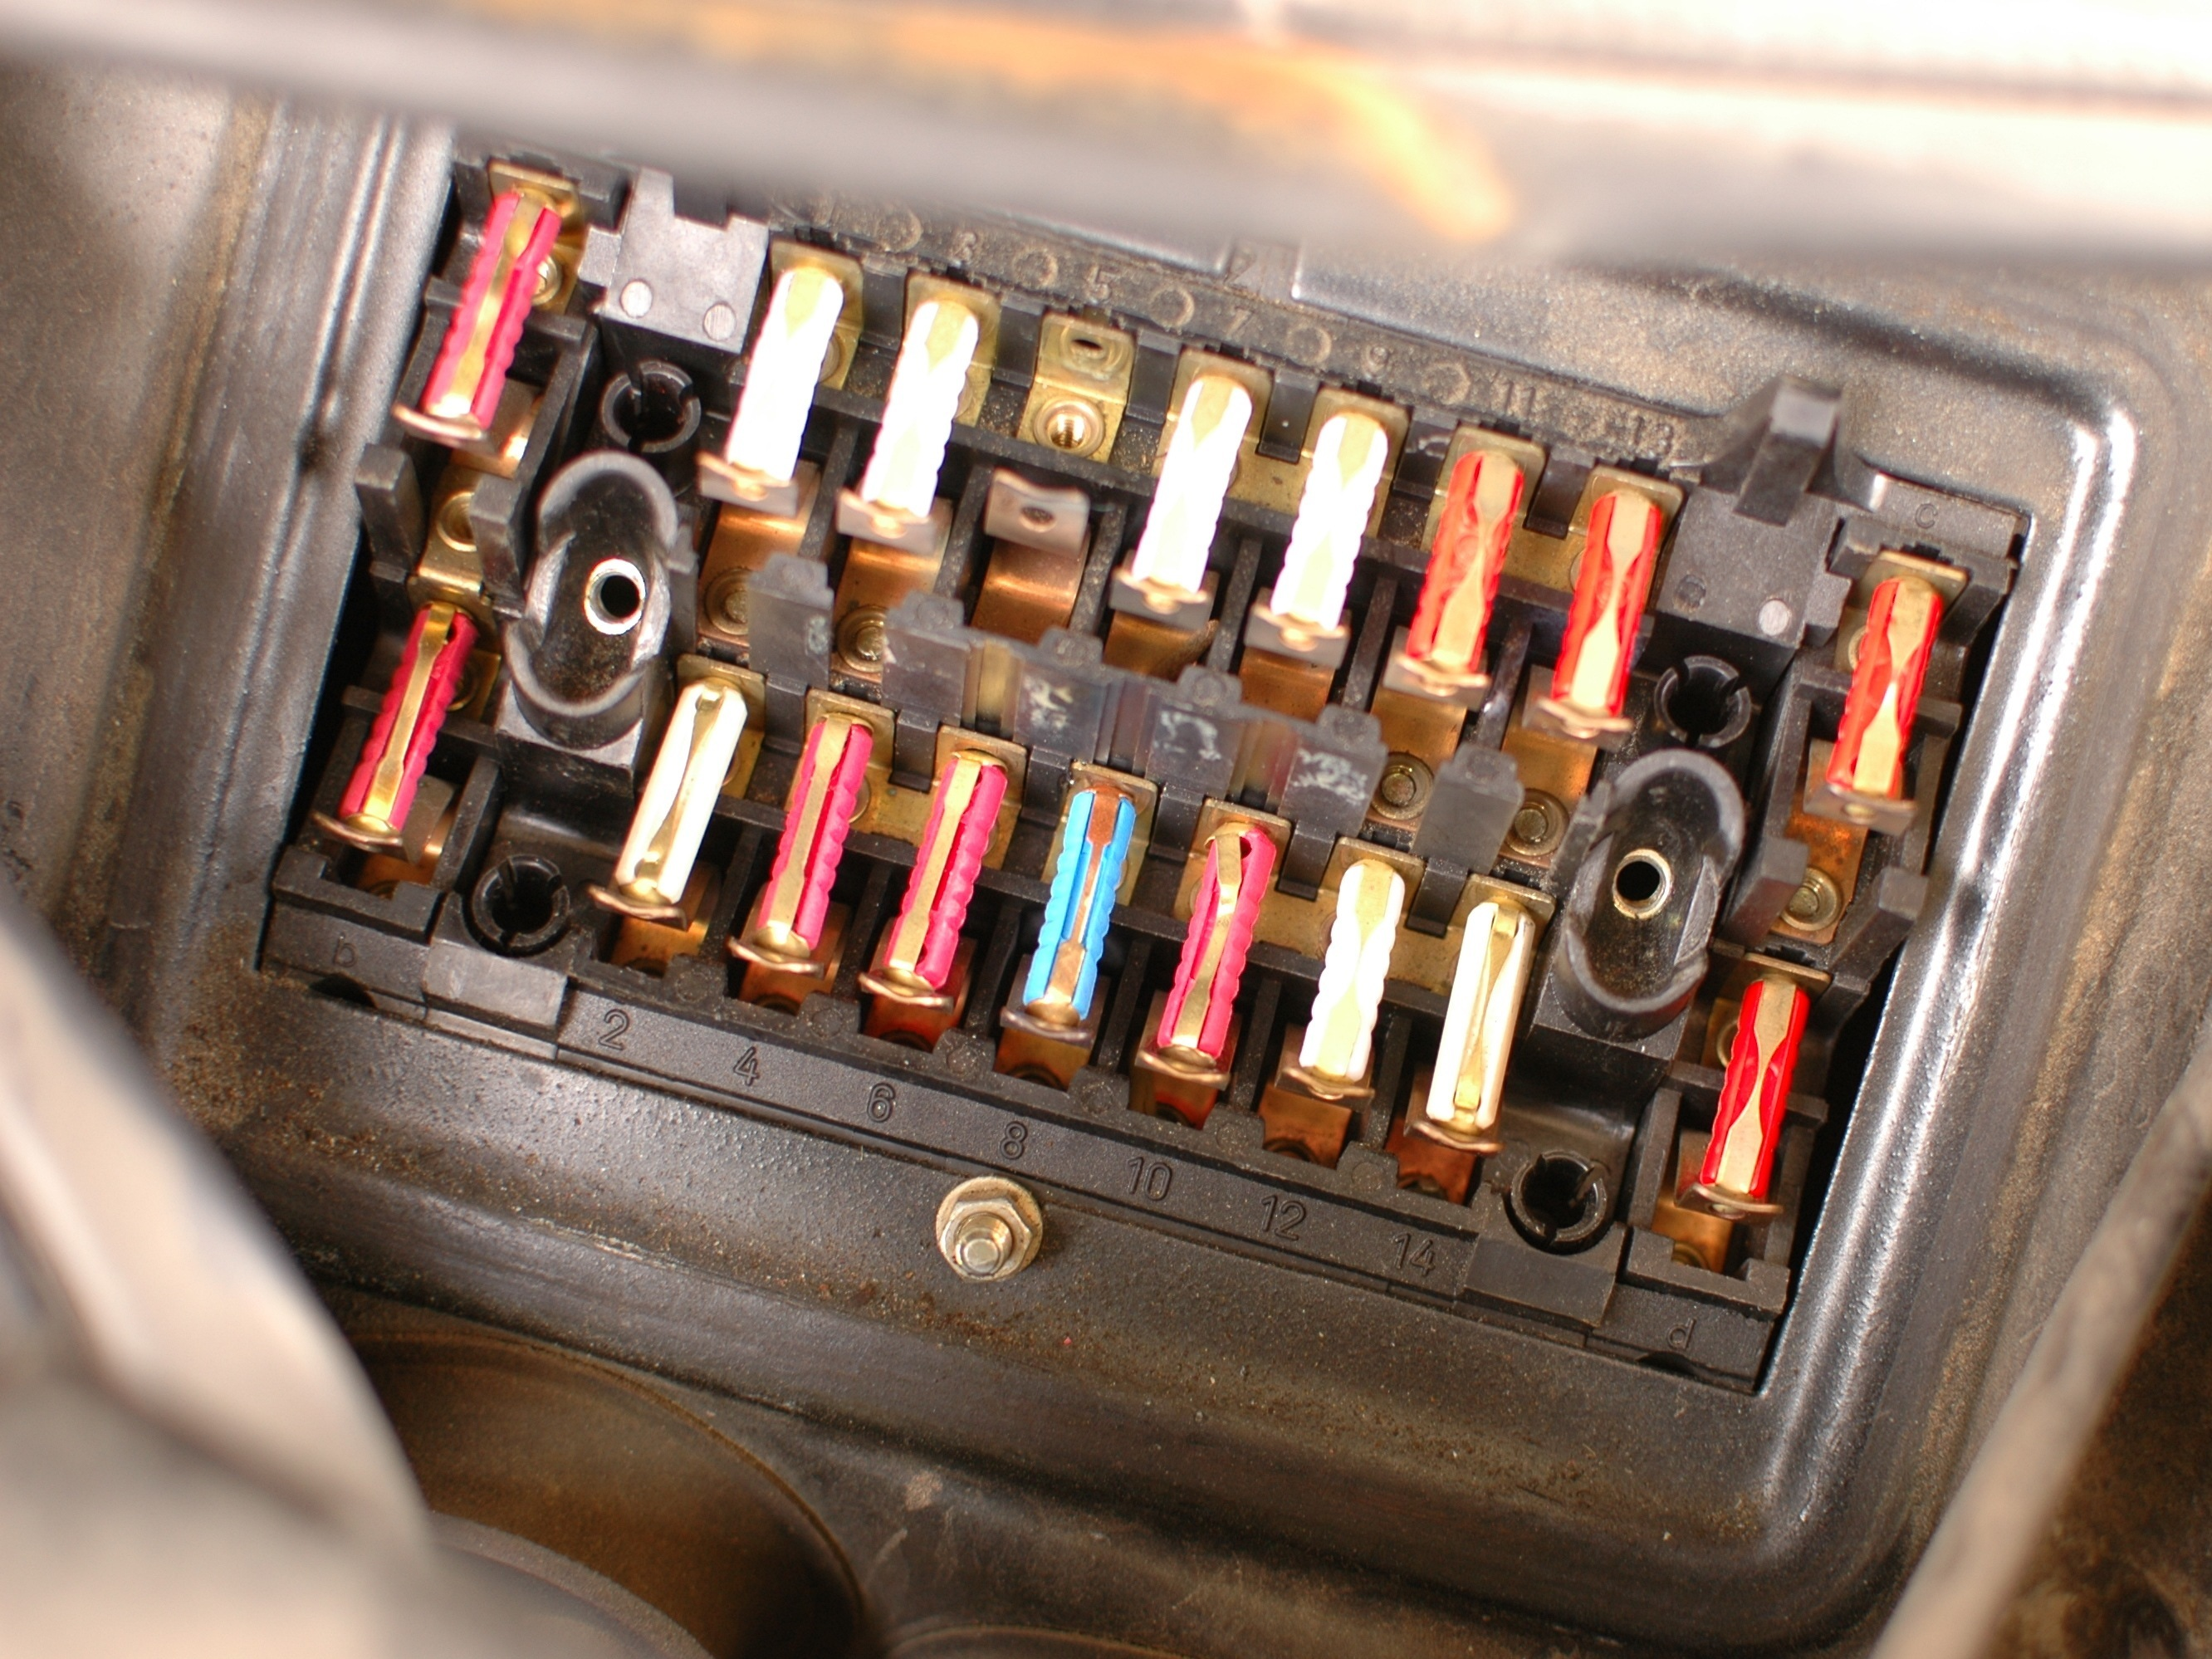 AfYAfmoCaMTVU2ap how to check mercedes w123 fuses ifixit mercedes 300d fuse box location at gsmx.co